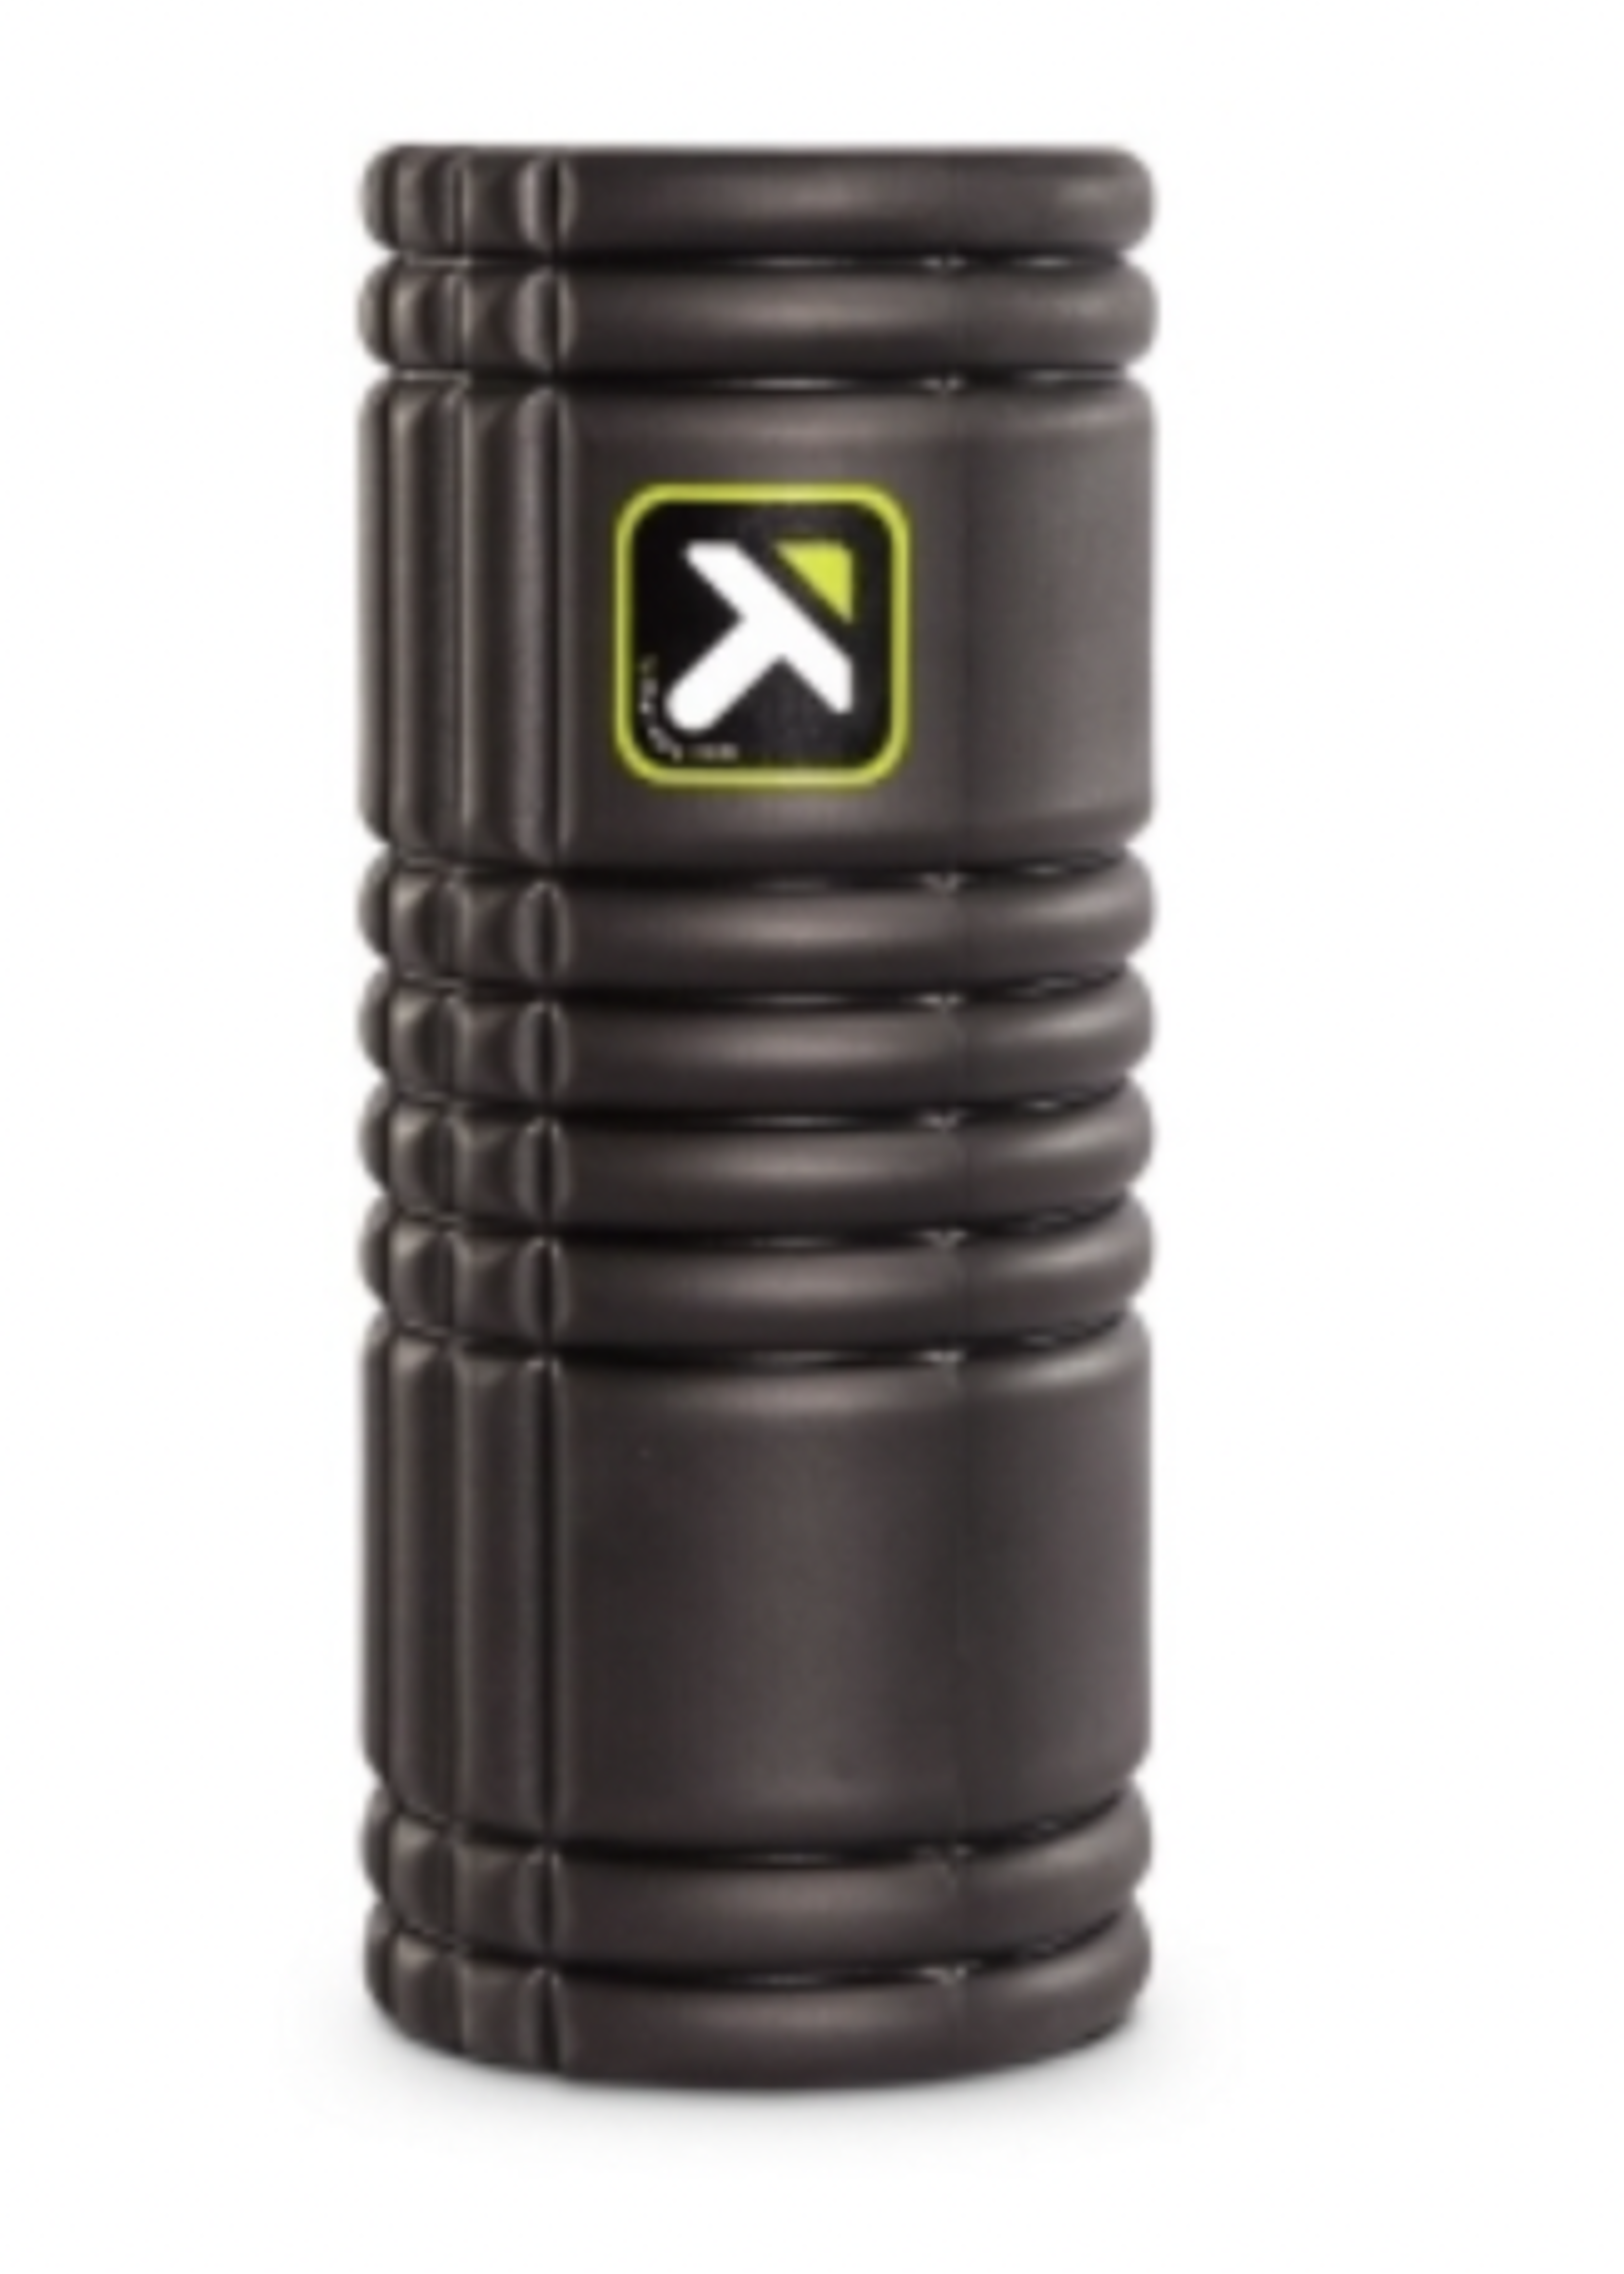 Triggerpoint Triggerpoint The Grid x 1.0 Black